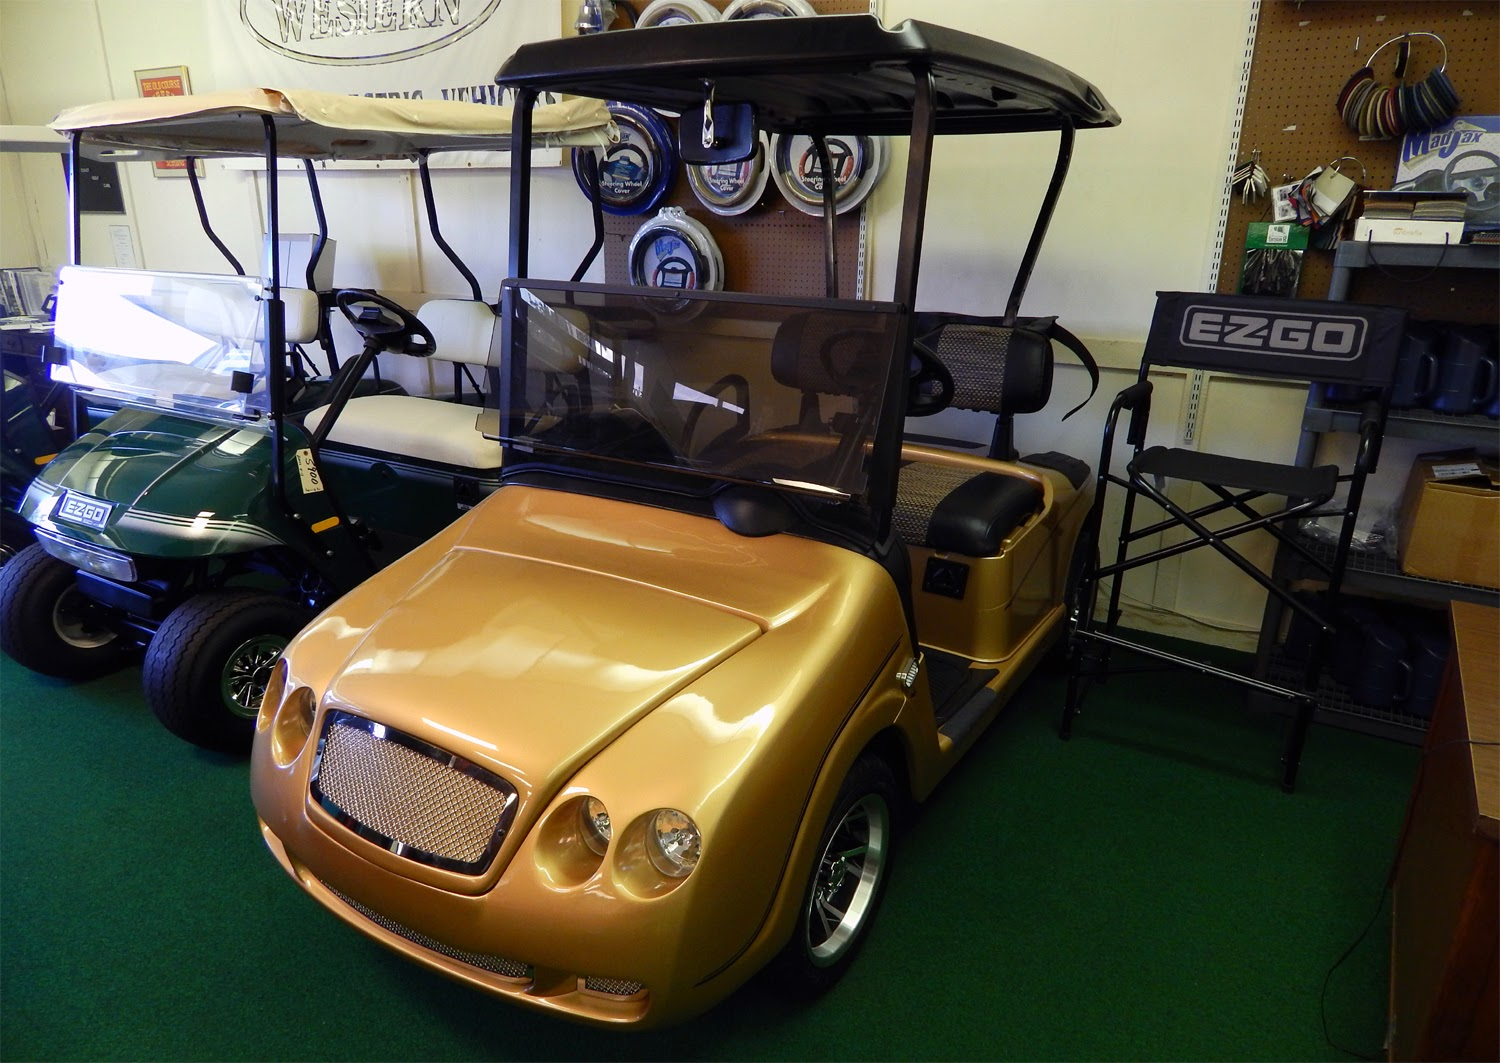 sale cart at town carts golf fun kissimmee old watch villages and cool bentley man for